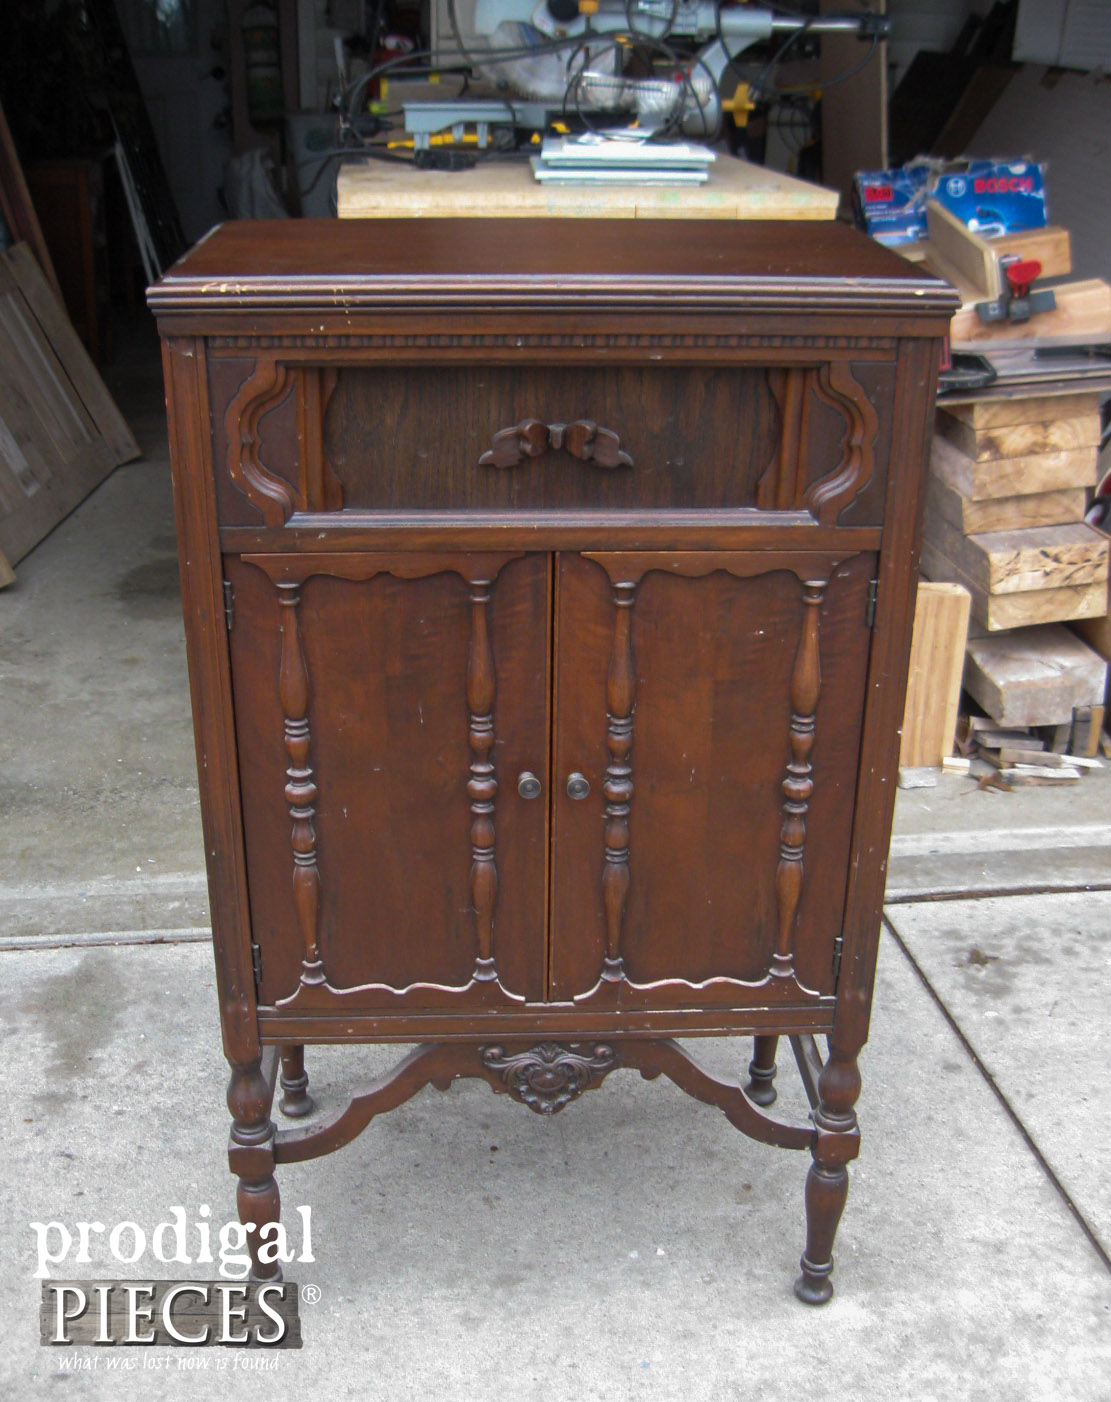 Antique Radio Cabinet Before Repurposed Makeover by Prodigal Pieces | www.prodigalpieces.com